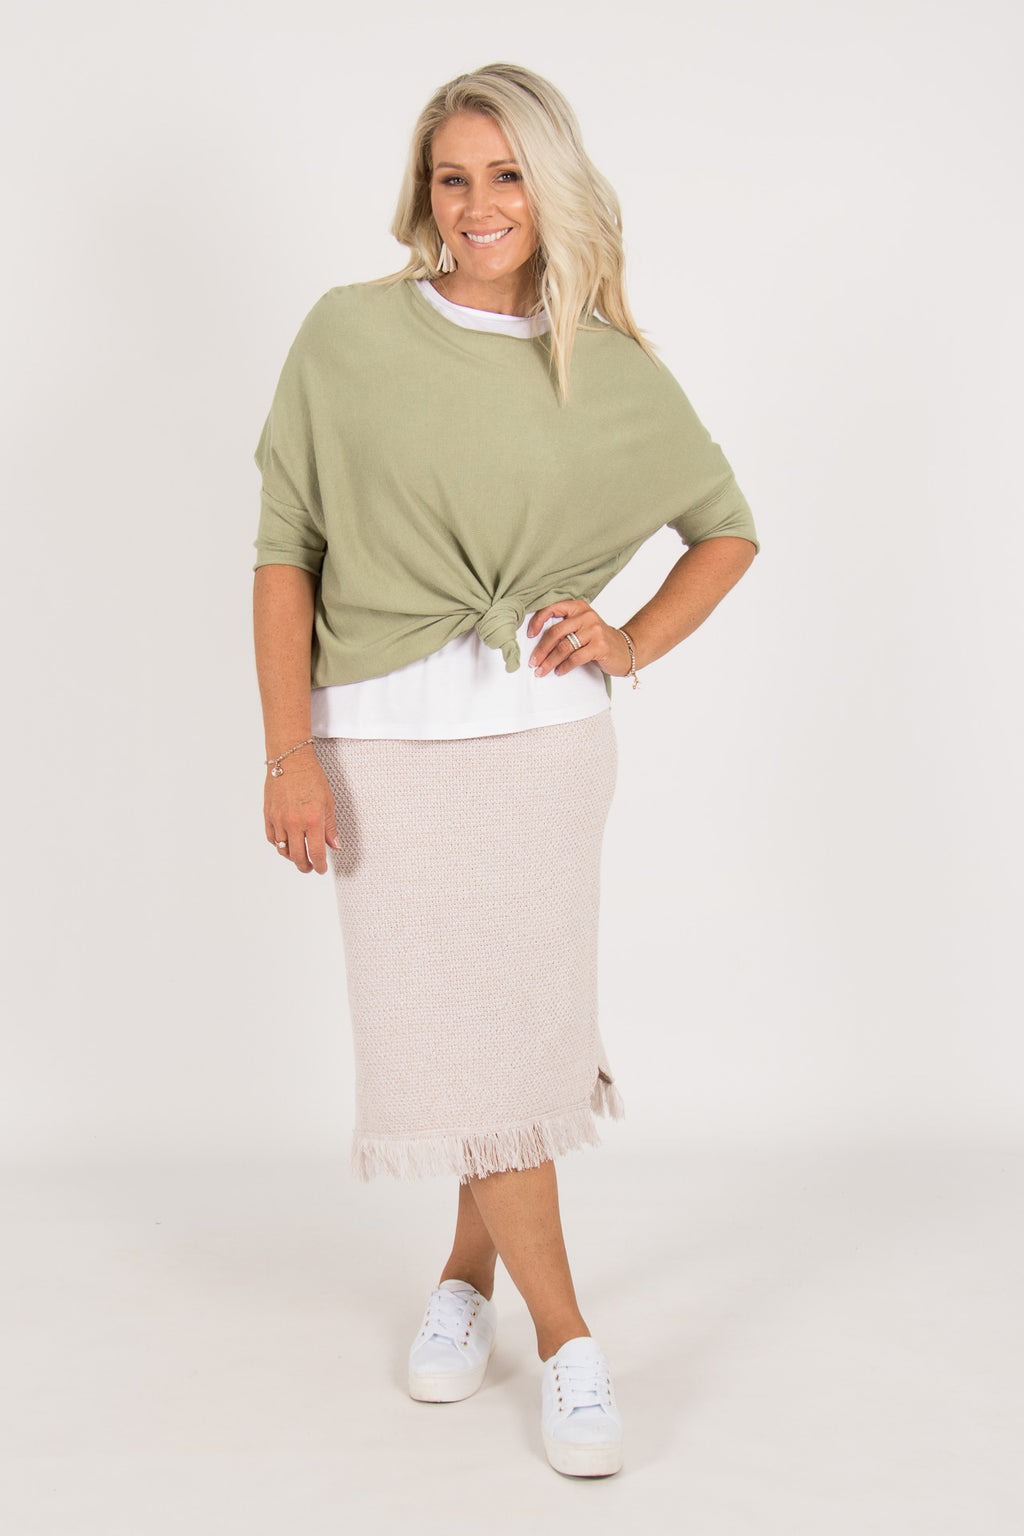 Karanda Knit Skirt in Oatmeal